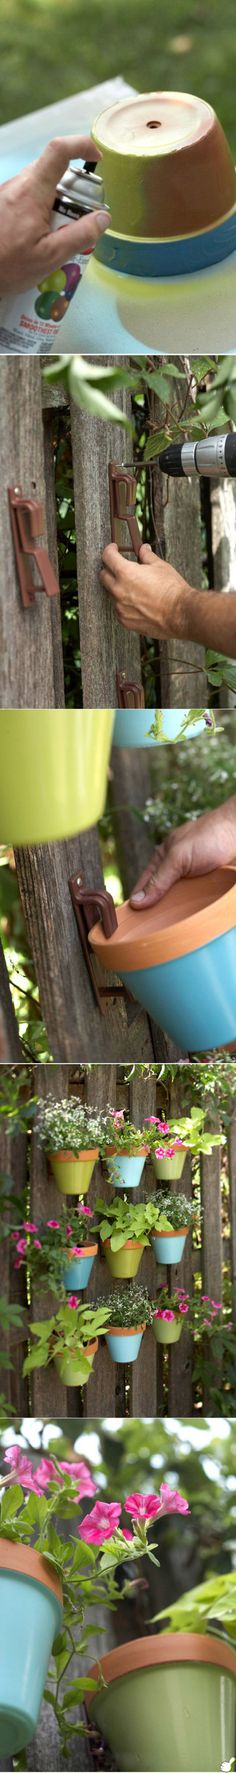 hang a clay pot from the fence; I love this for my backyard!